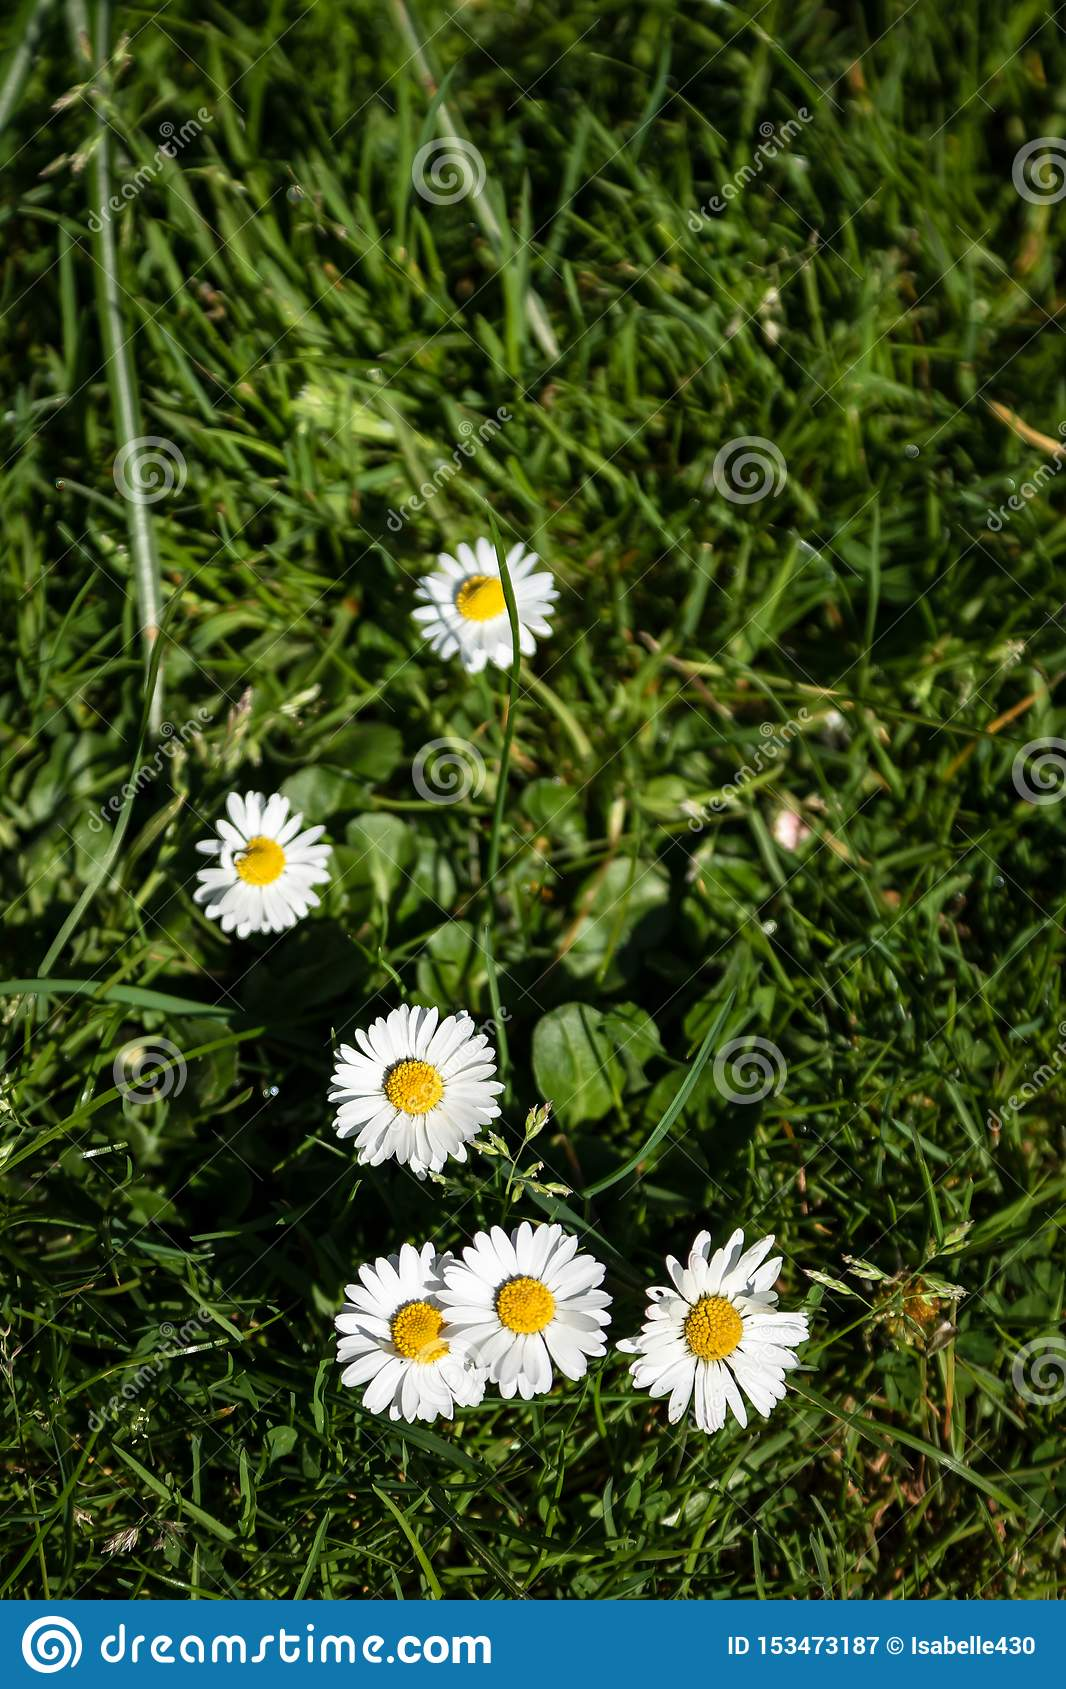 Summer Daisies in the Grass